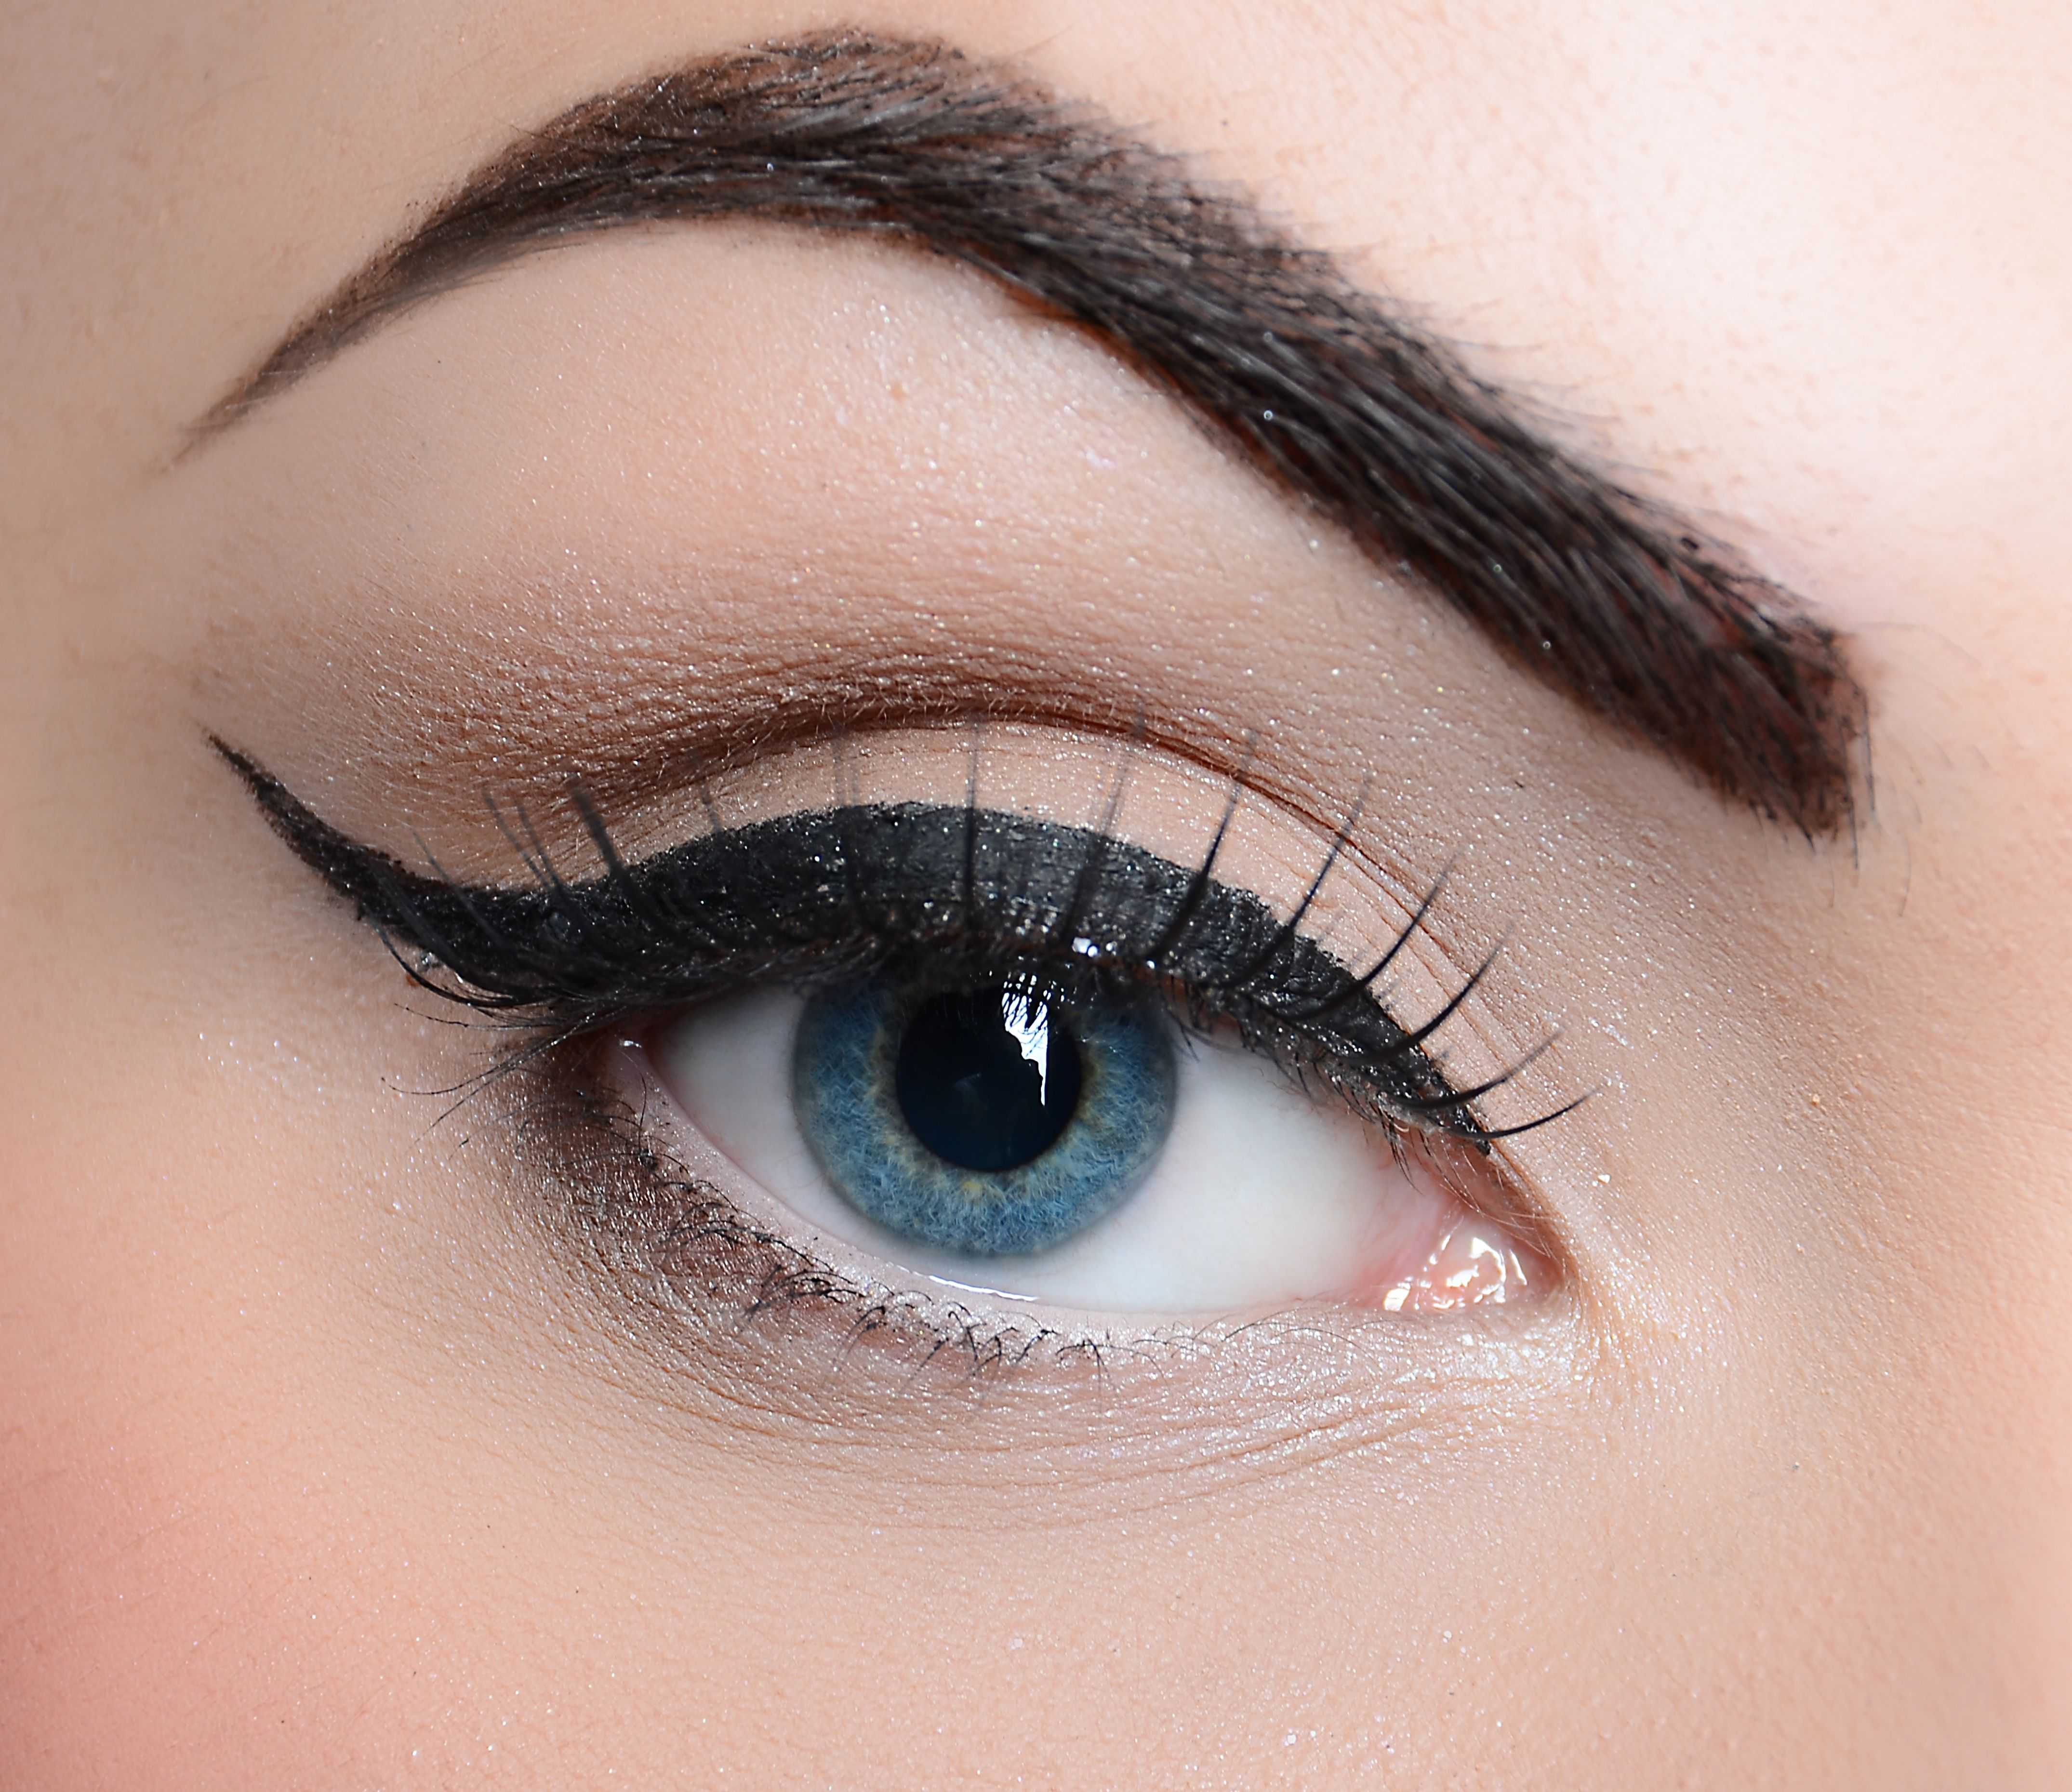 Beautiful Thick Eyebrow Shaping Wallpaper image, photo or picture